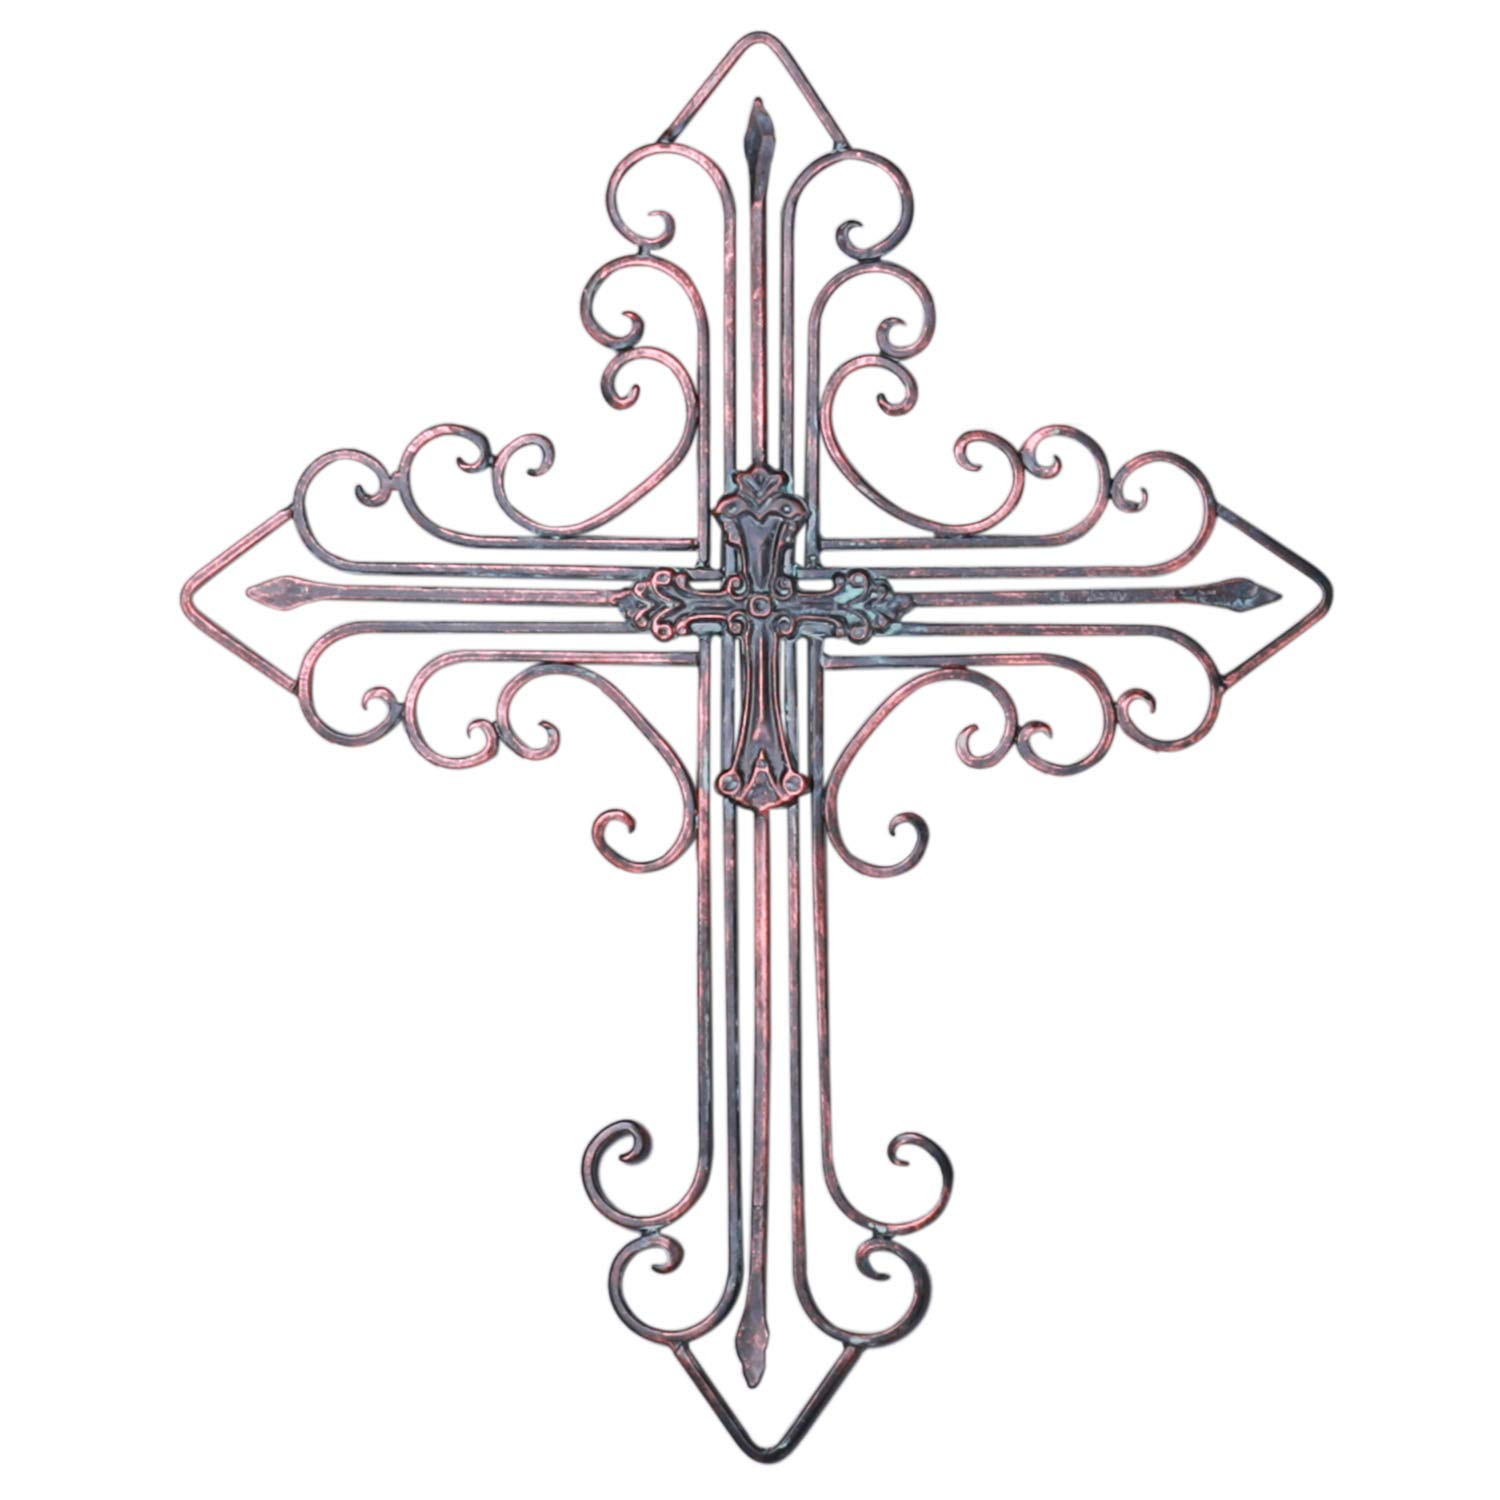 Kleanner Antique Wall Mount Layered Cross, Metal Scrolled Wall Art Wall Sculptures Cross with Hook, Decorative Iron Hanging Cross Home Decor, 14.2'' x 17.3'', Copper Brown